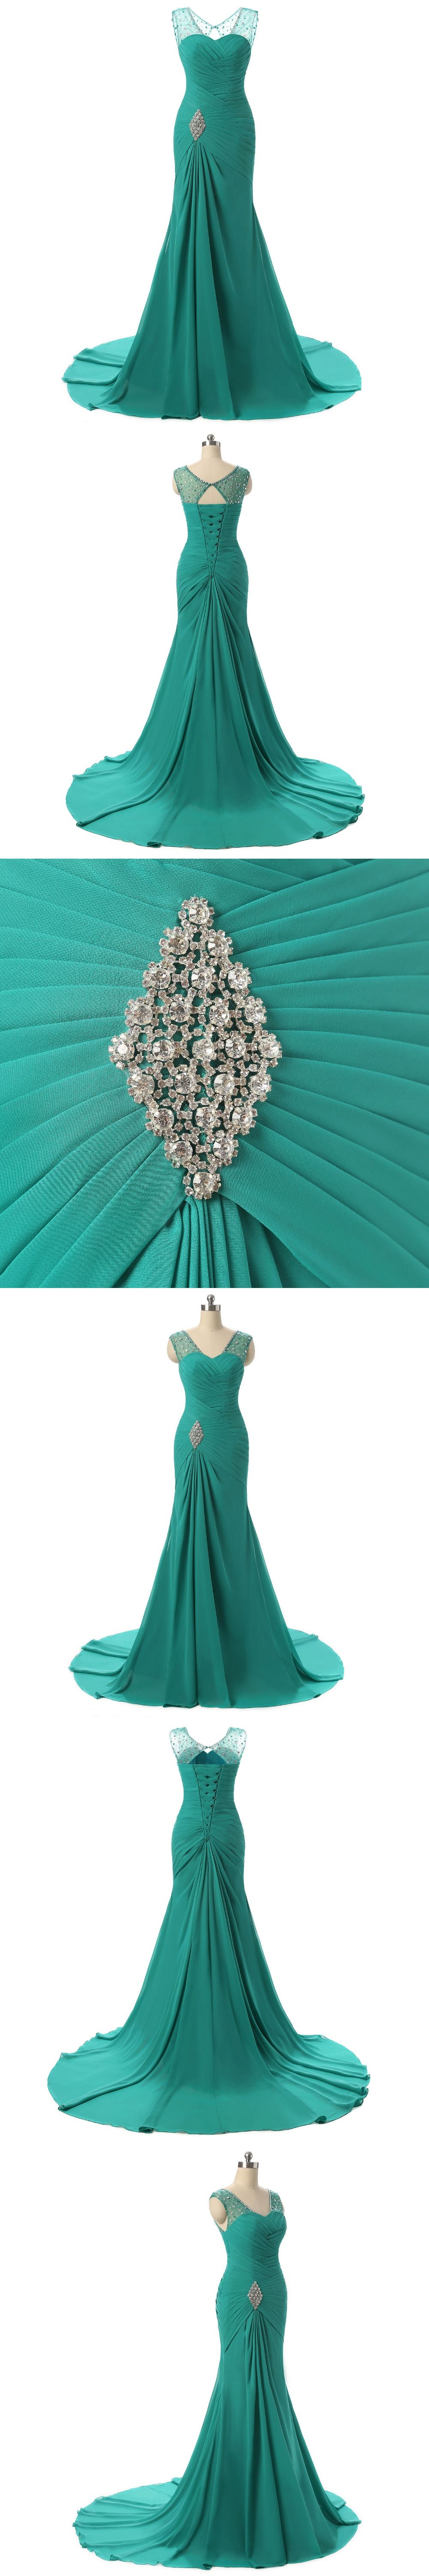 New collection turquoise prom dresses pleated ruched backless